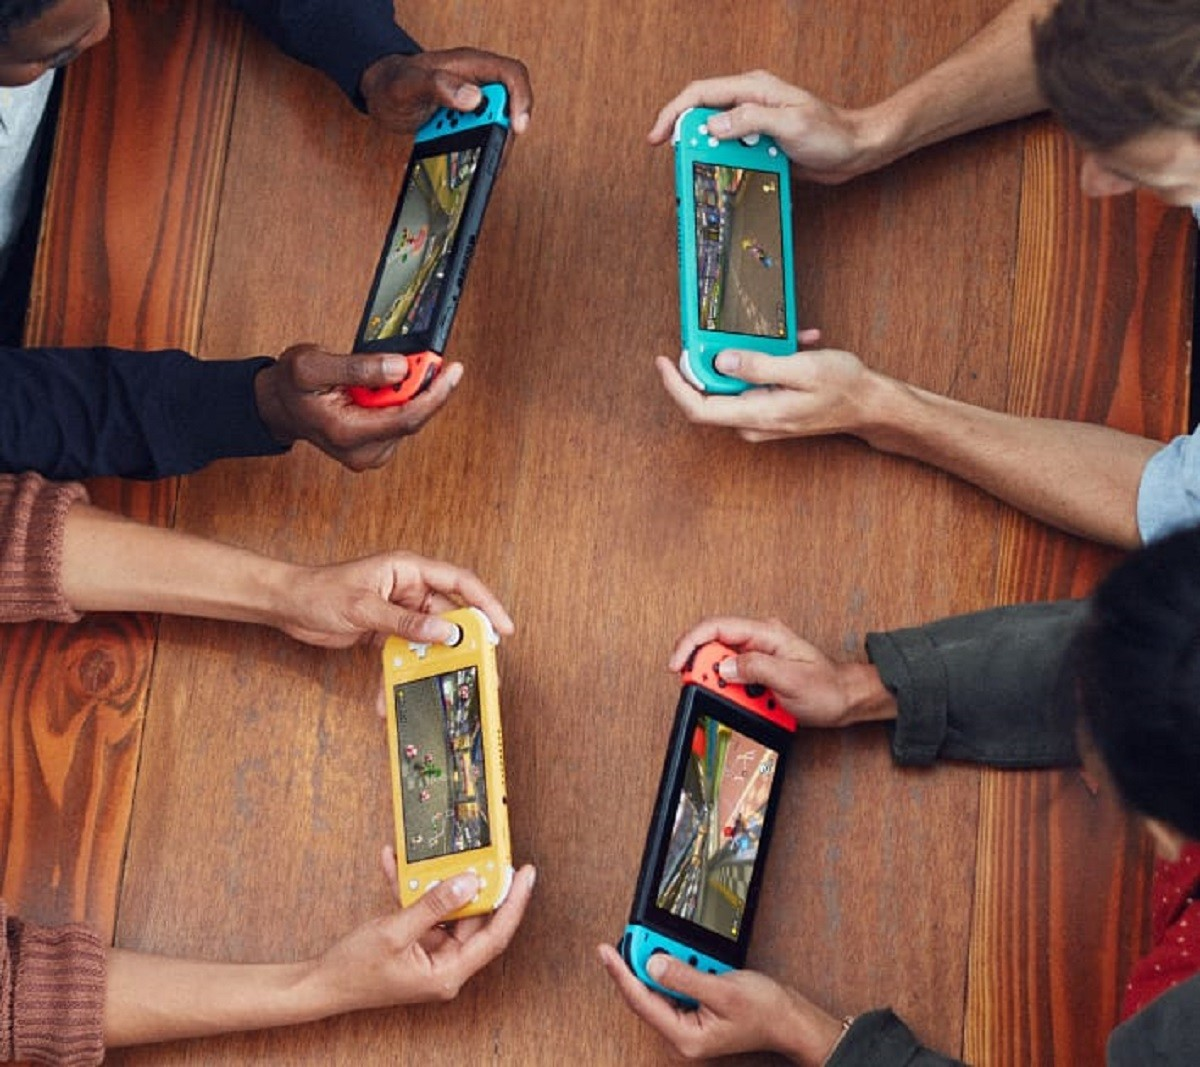 Nintendo Switch, Nintendo, , Video Games, Nintendo DS Lite, Handheld game console, Nintendo 3DS, Mega Man 11, Video Game Consoles, , hand, Gadget, Electronic device, Mobile phone, Technology, Portable communications device, Communication Device, Hand, Fun, Mobile device, Human